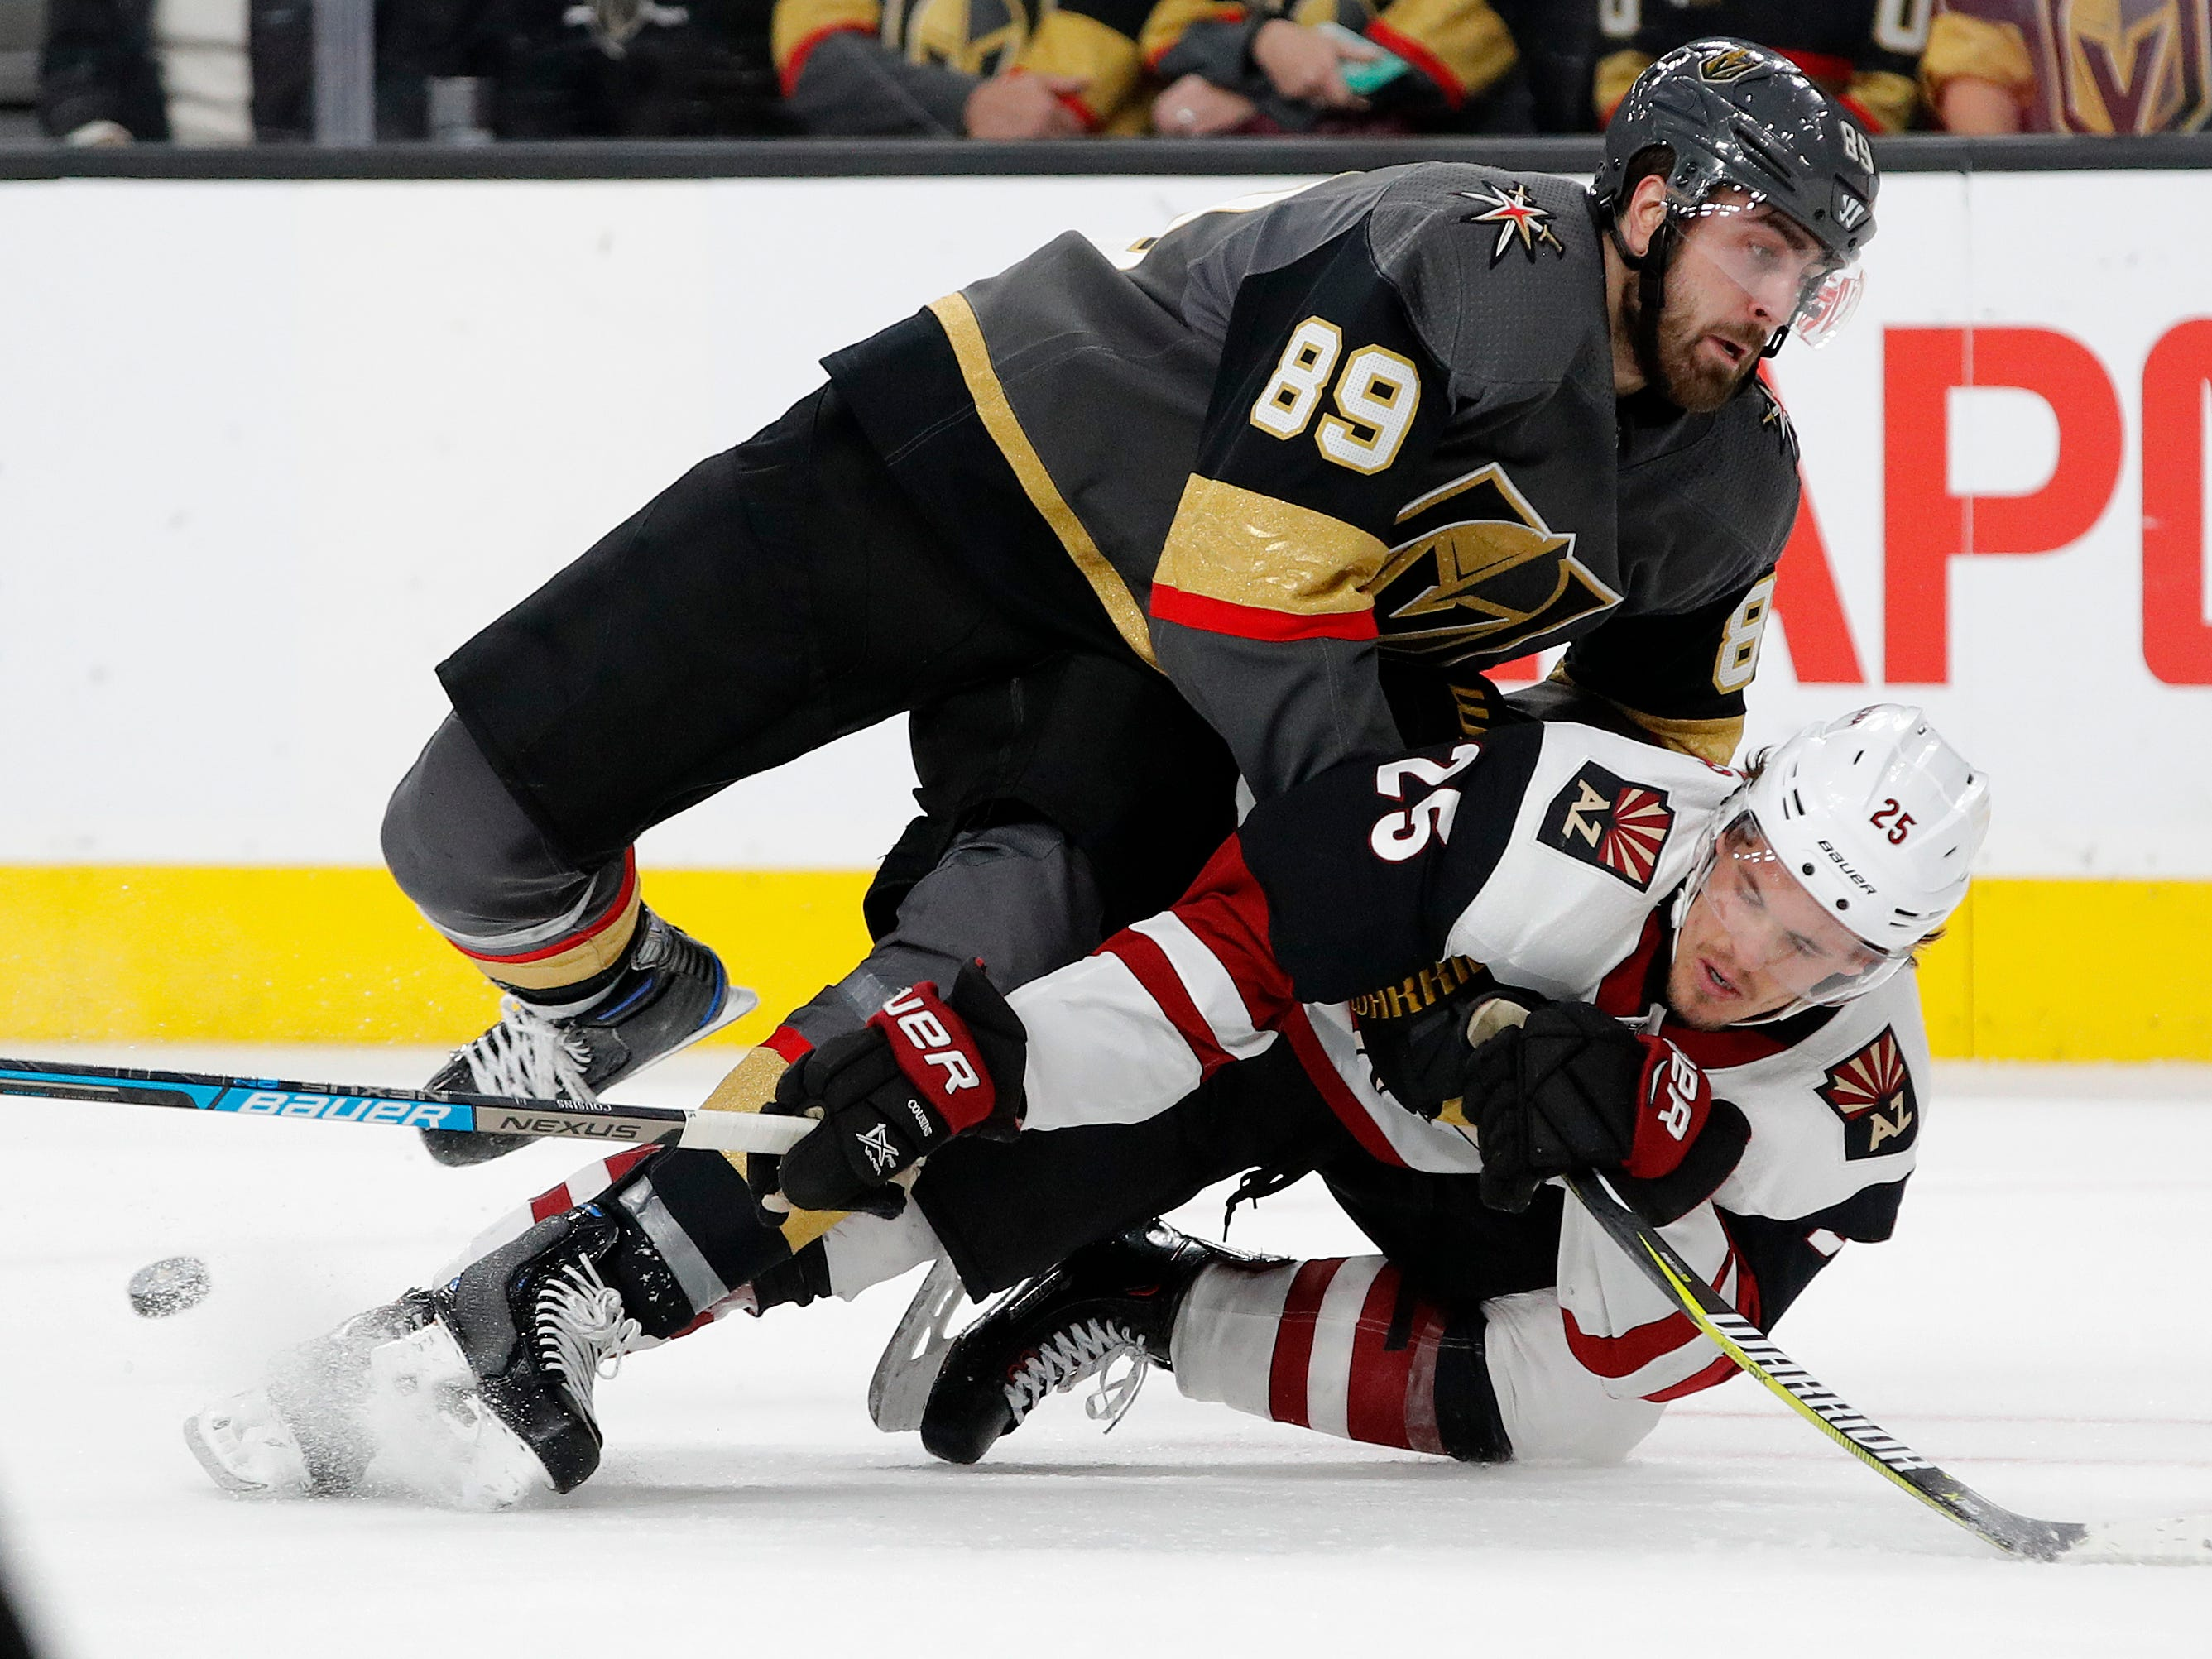 Vegas Golden Knights right wing Alex Tuch (89) falls onto Arizona Coyotes center Nick Cousins (25) during the second period of an NHL hockey game Tuesday, Feb. 12, 2019, in Las Vegas. (AP Photo/John Locher)